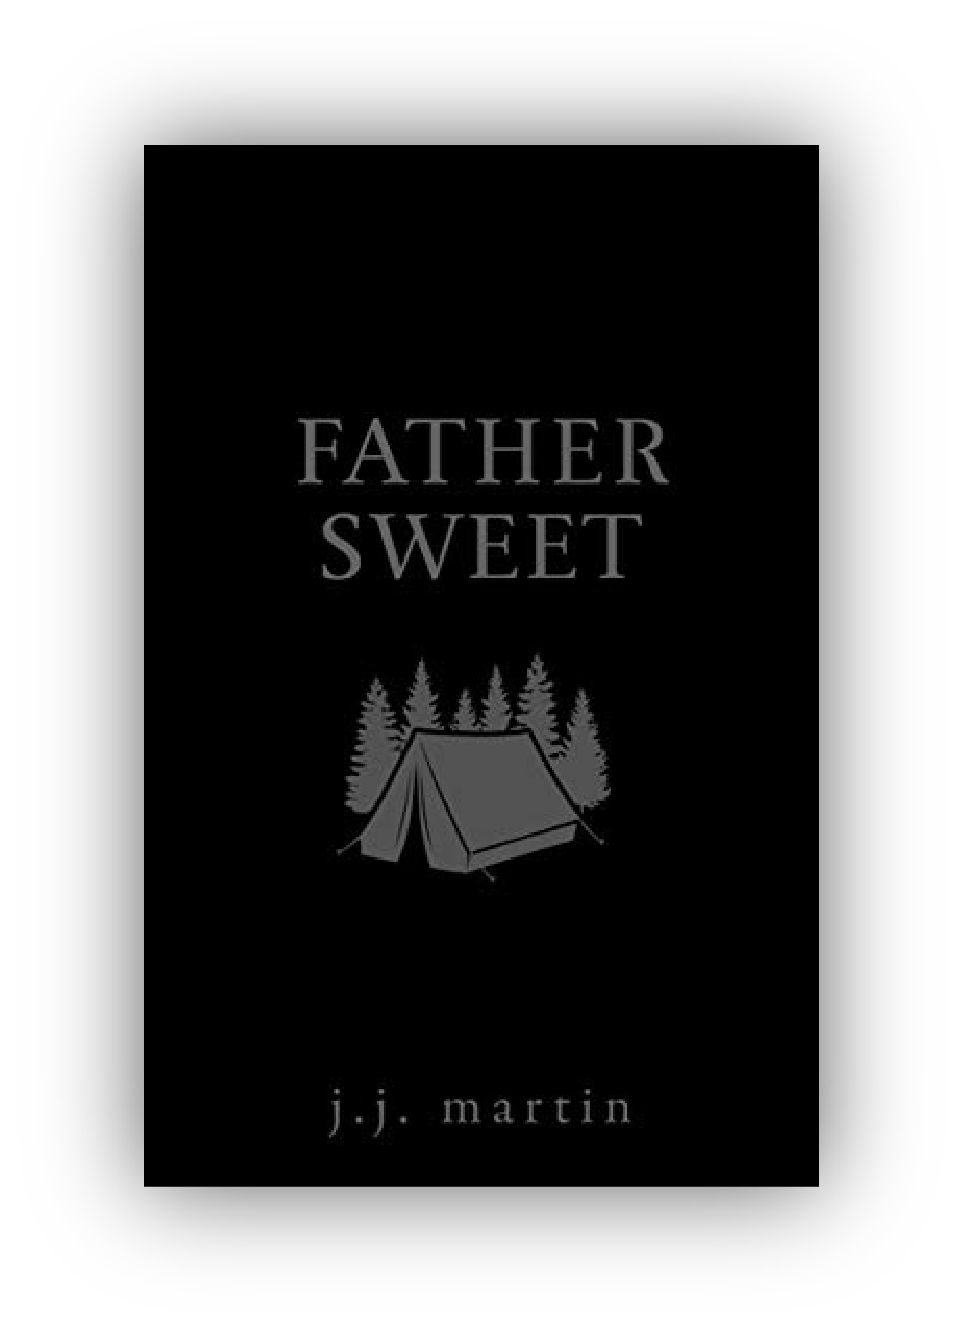 fathersweet-dropshadow-01.png